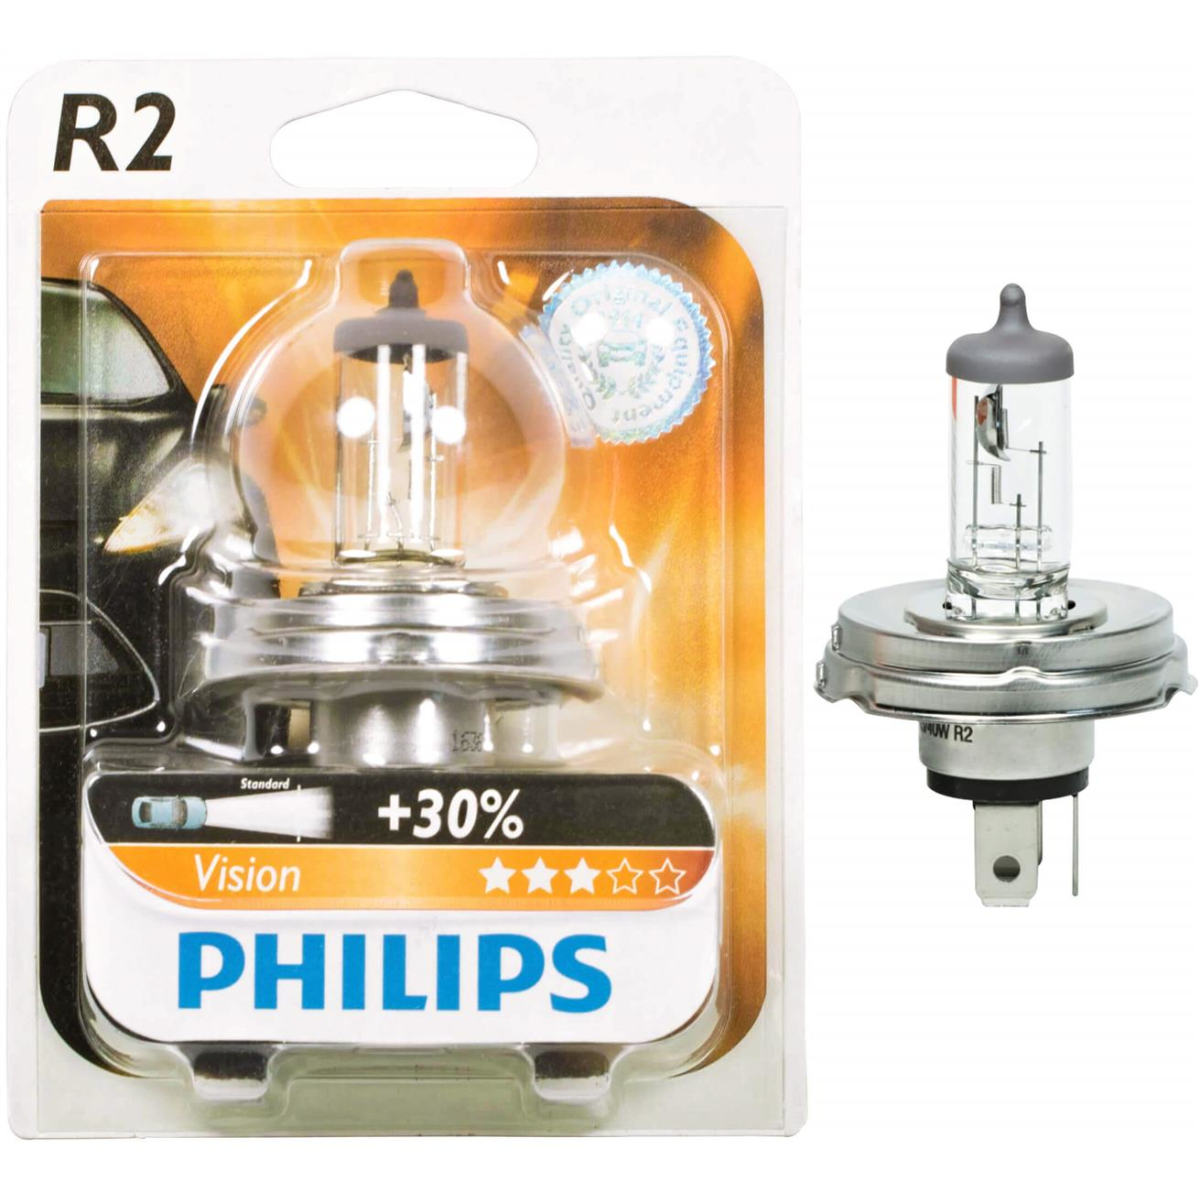 Philips standard lamps R2 Visio 12475B1 12V 45/40W (1 pc. in blister)